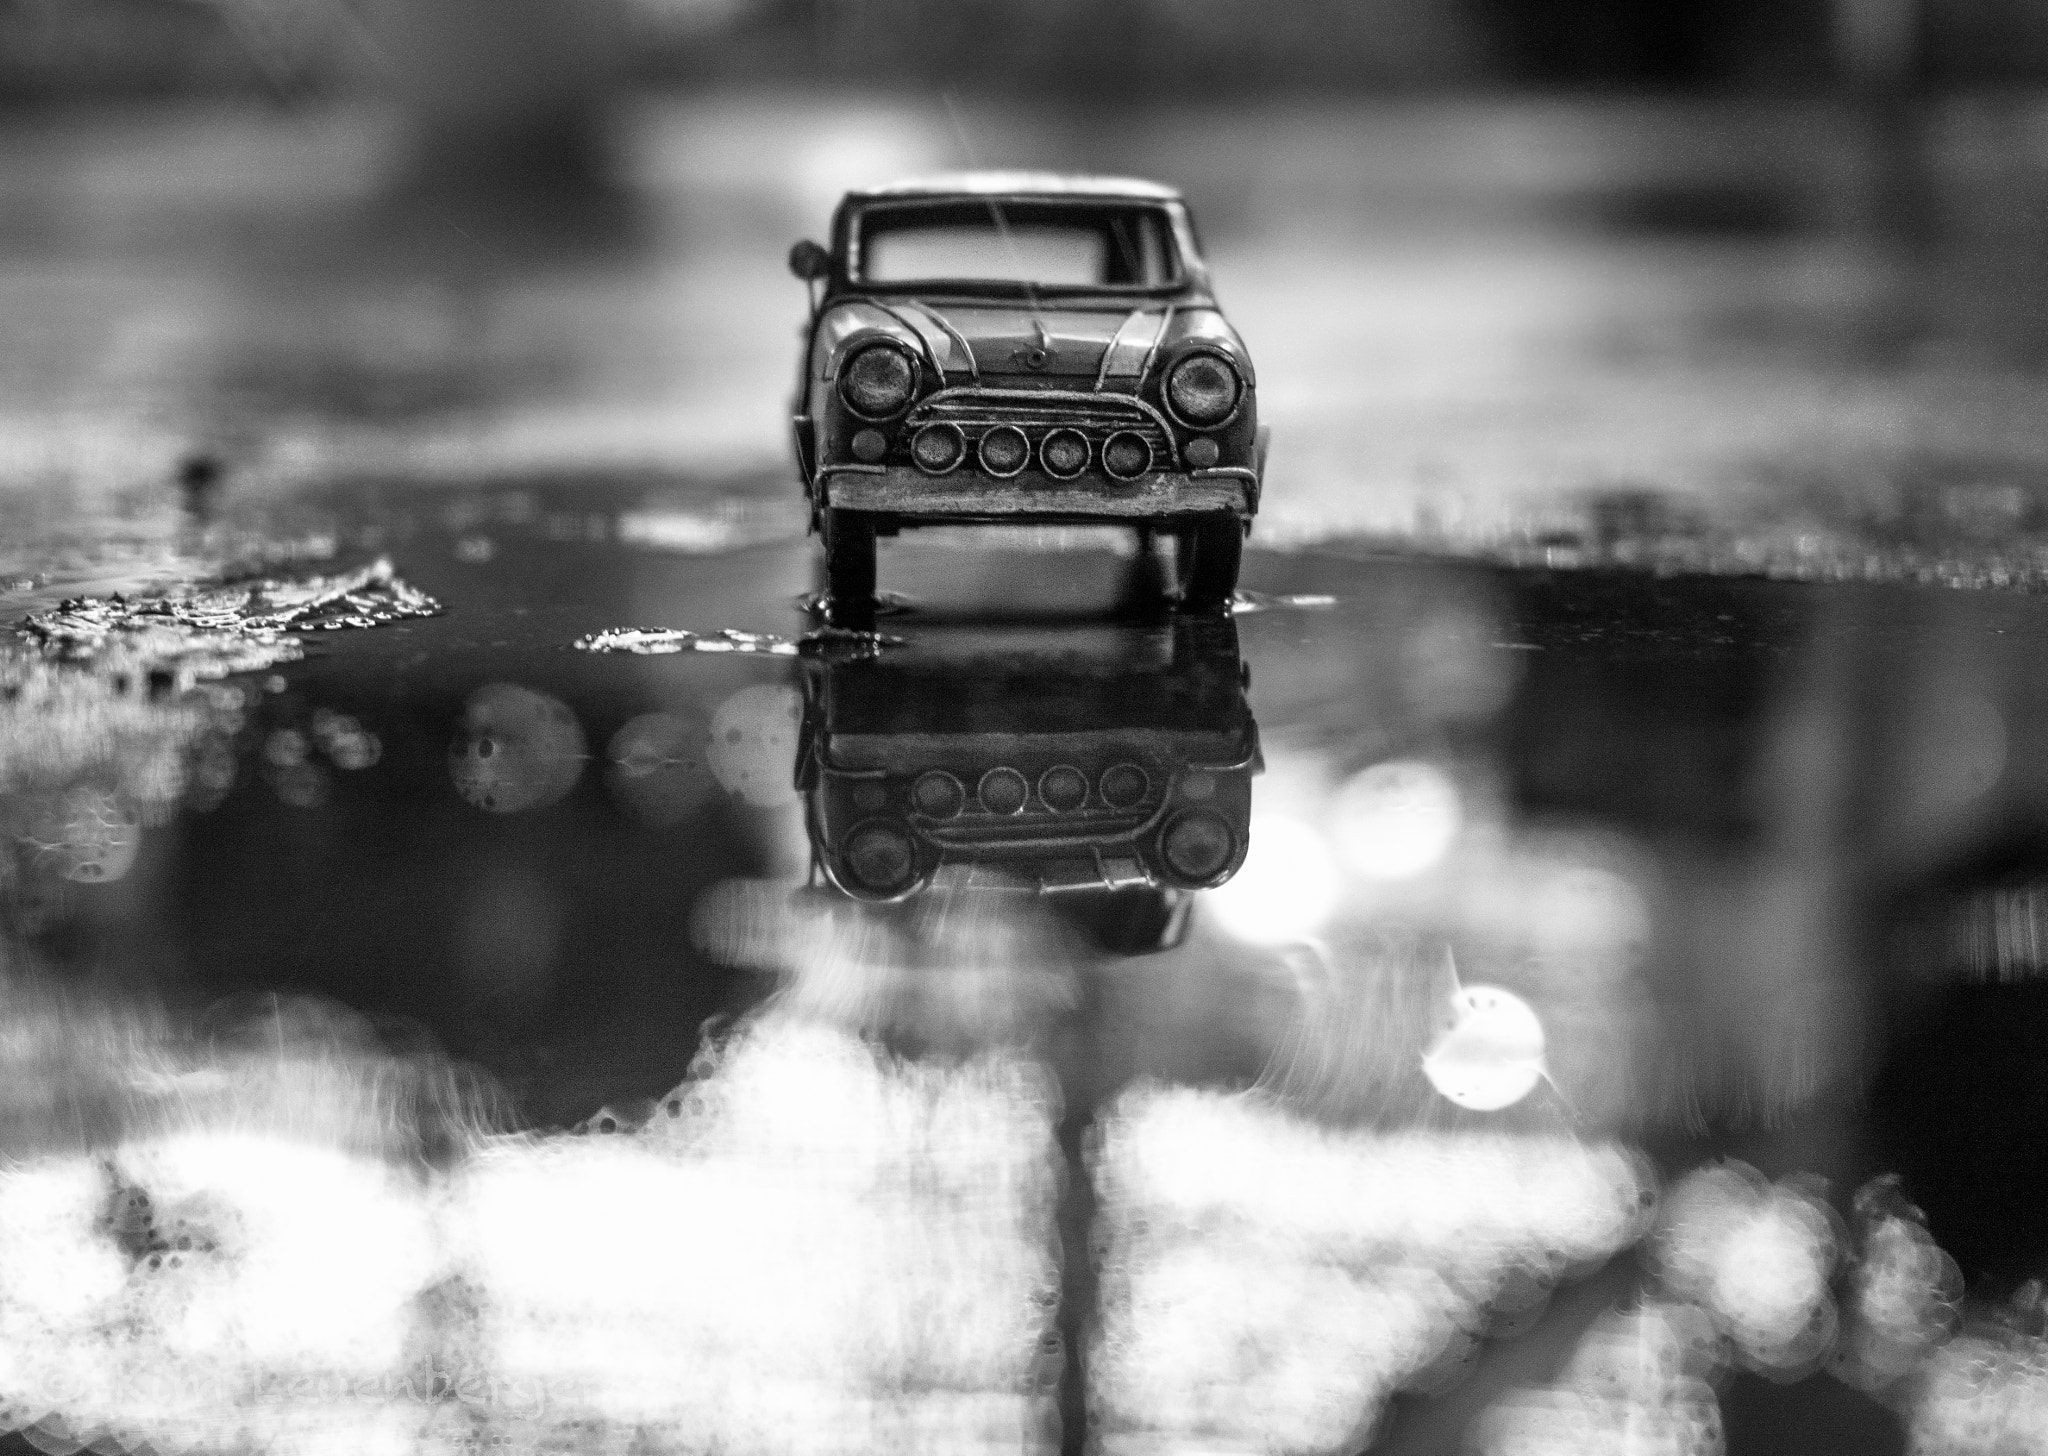 Photograph Good Old Memories. It's been a great year :D by Kim Leuenberger on 500px